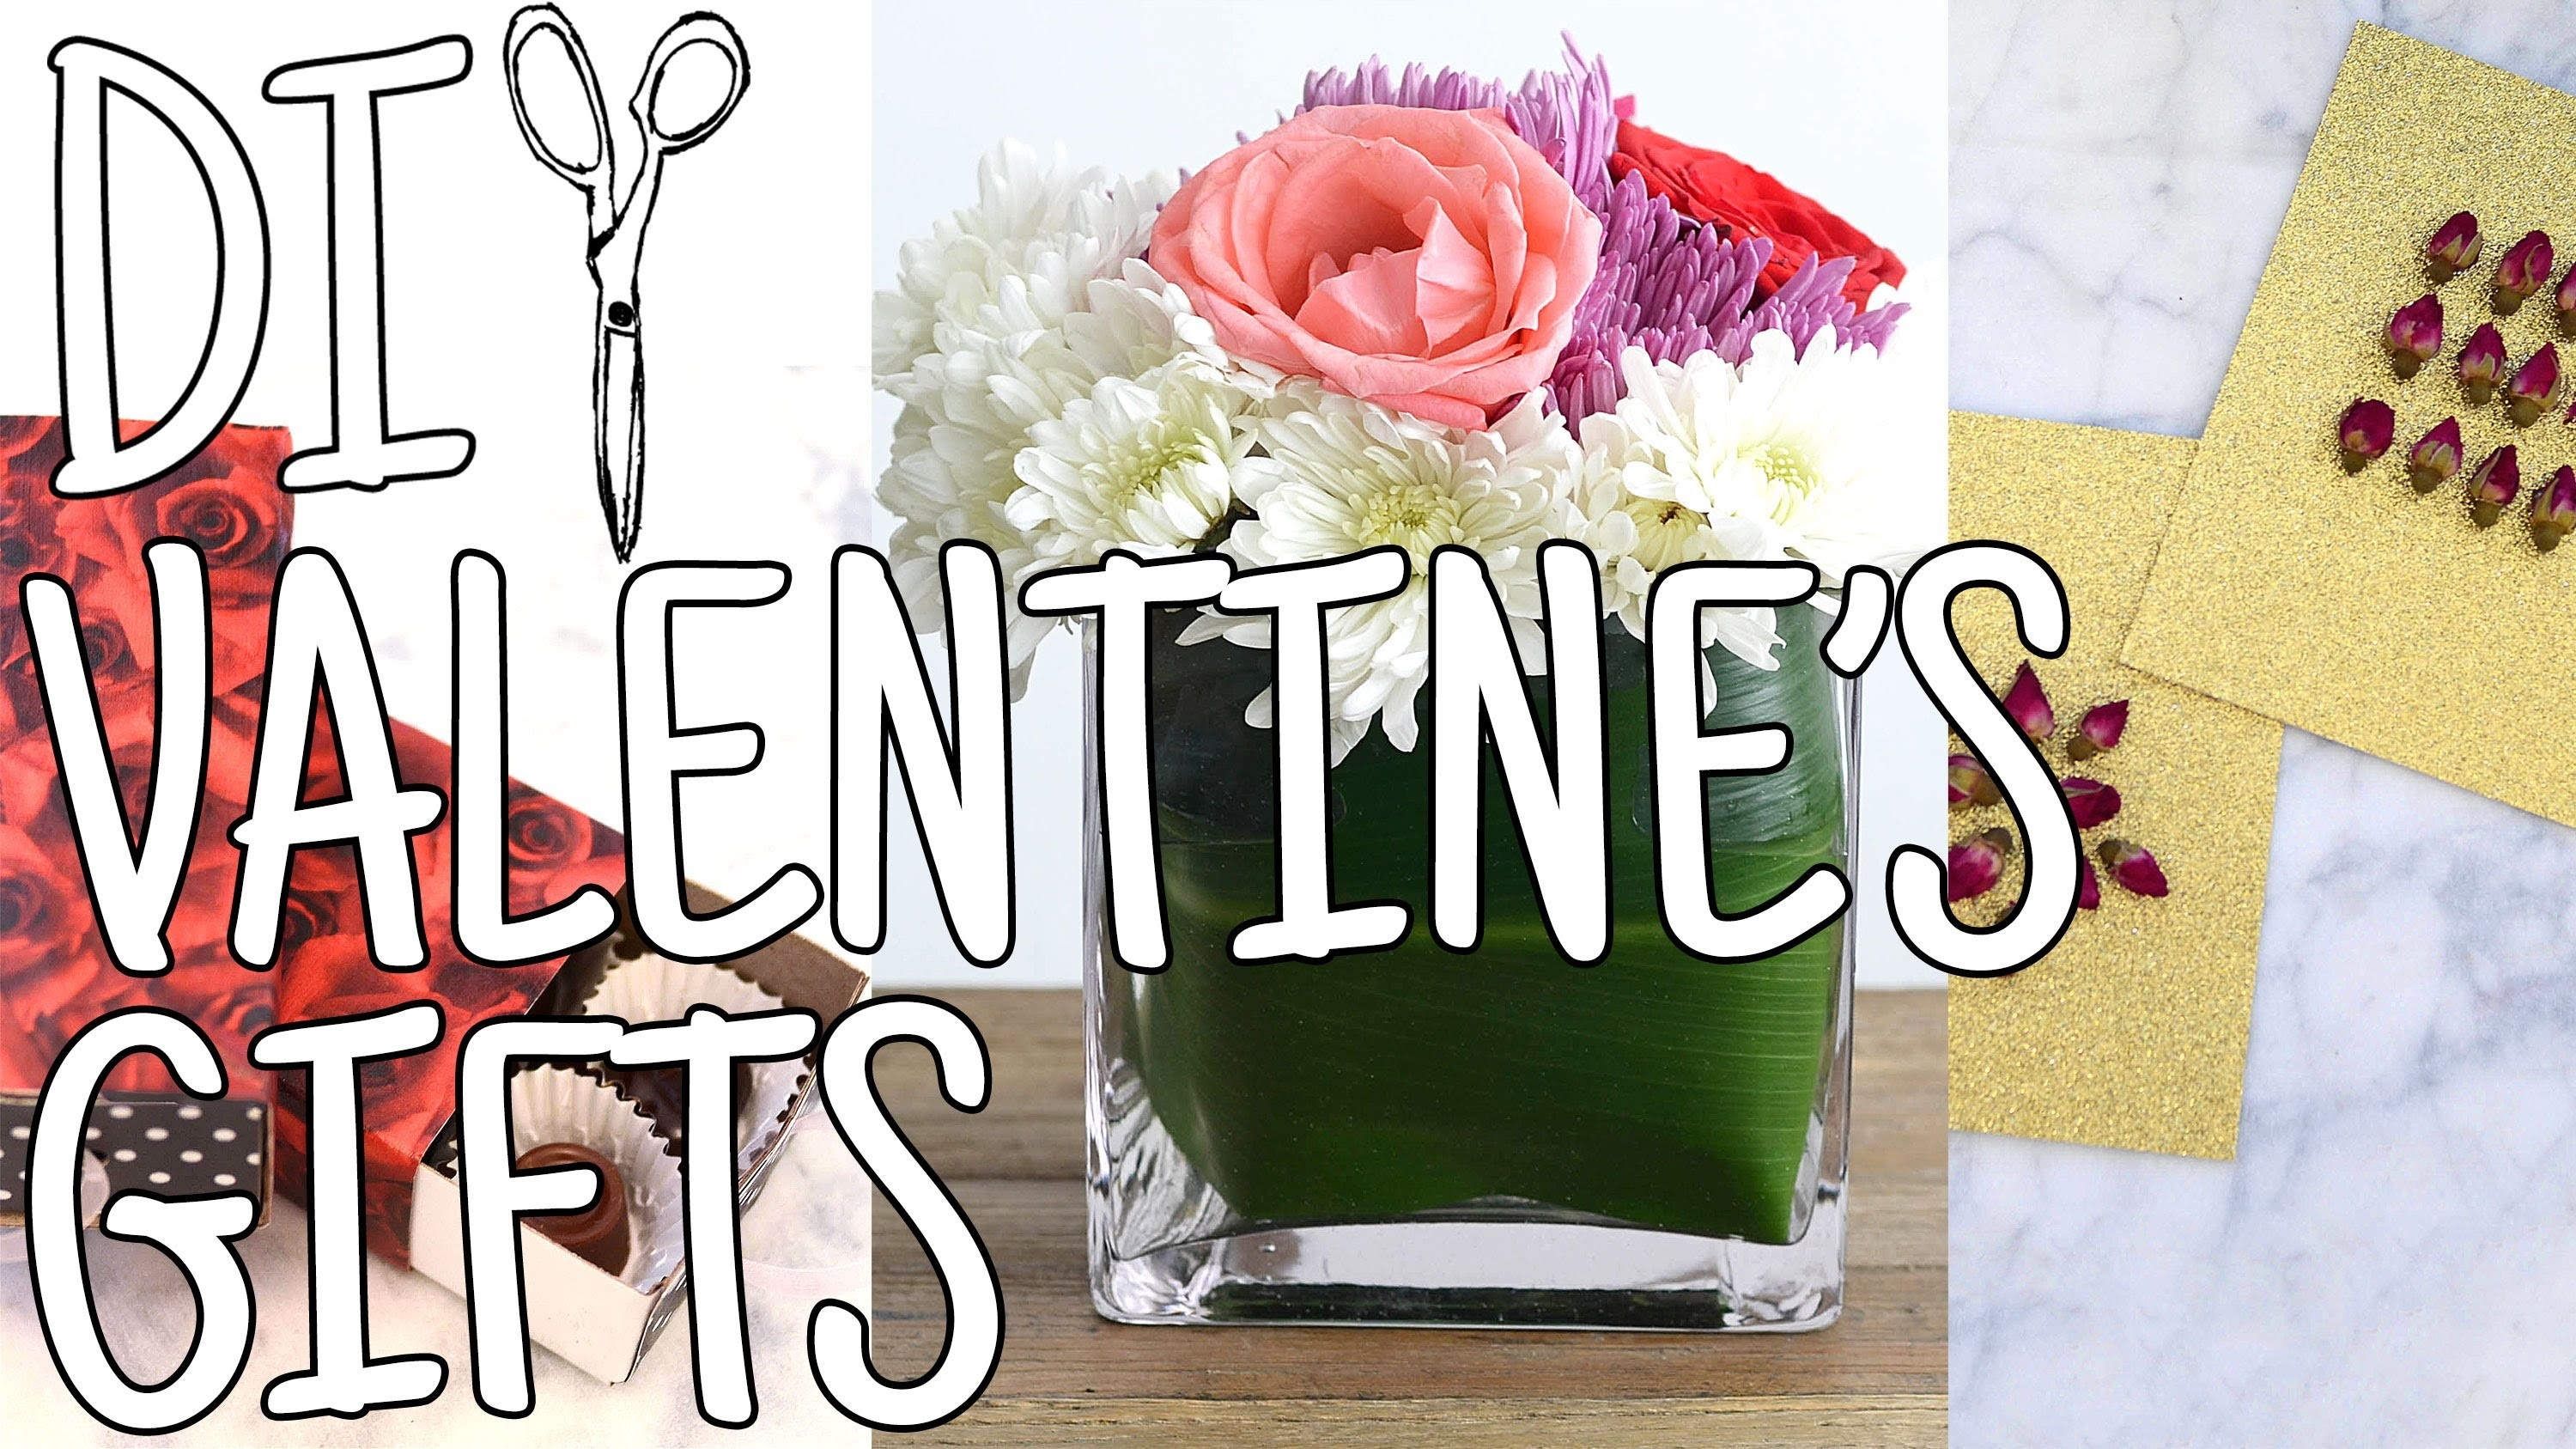 DIWhyNot: 3 DIY Valentine's Gifts - Chocolates, Flowers and Cards!